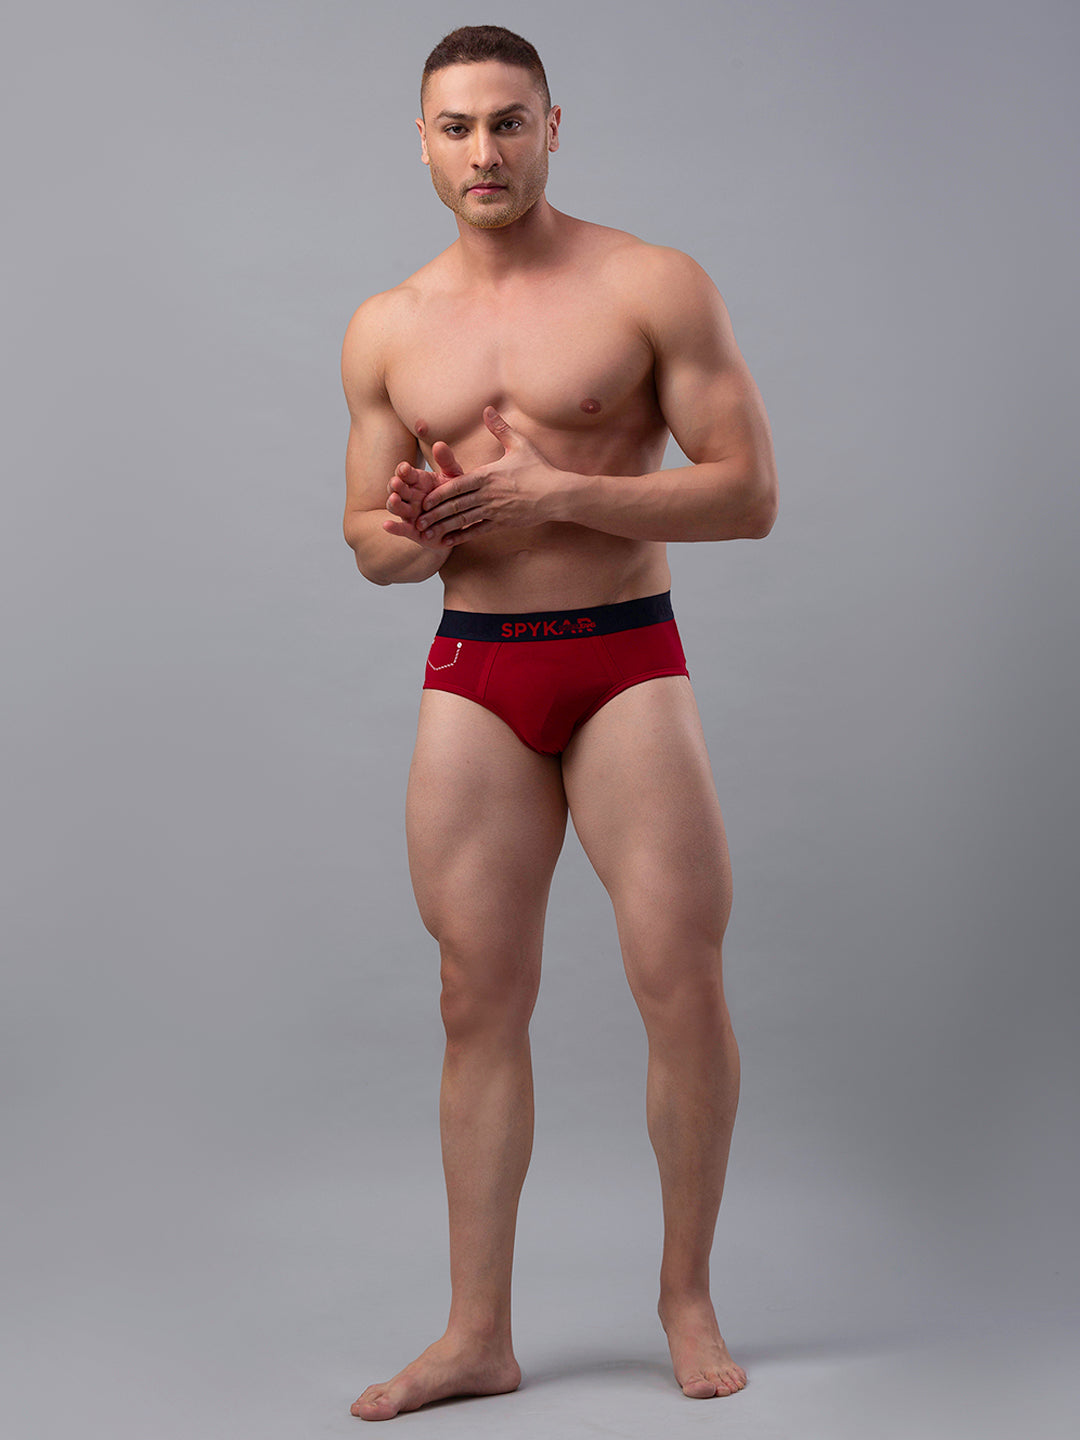 Underjeans Red Cotton Briefs - Pack of 2